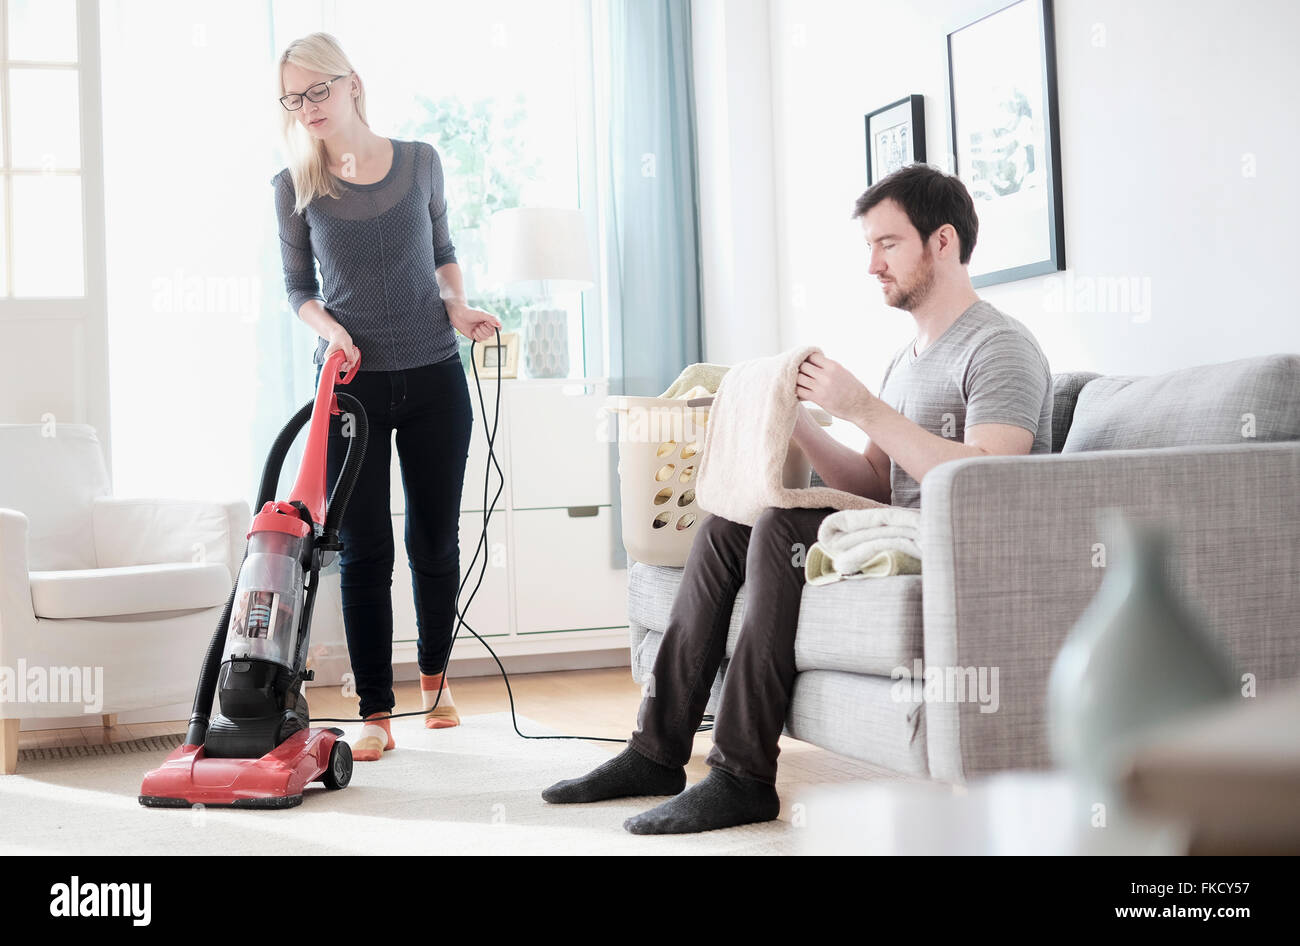 Cleaning Room High Resolution Stock Photography And Images Alamy